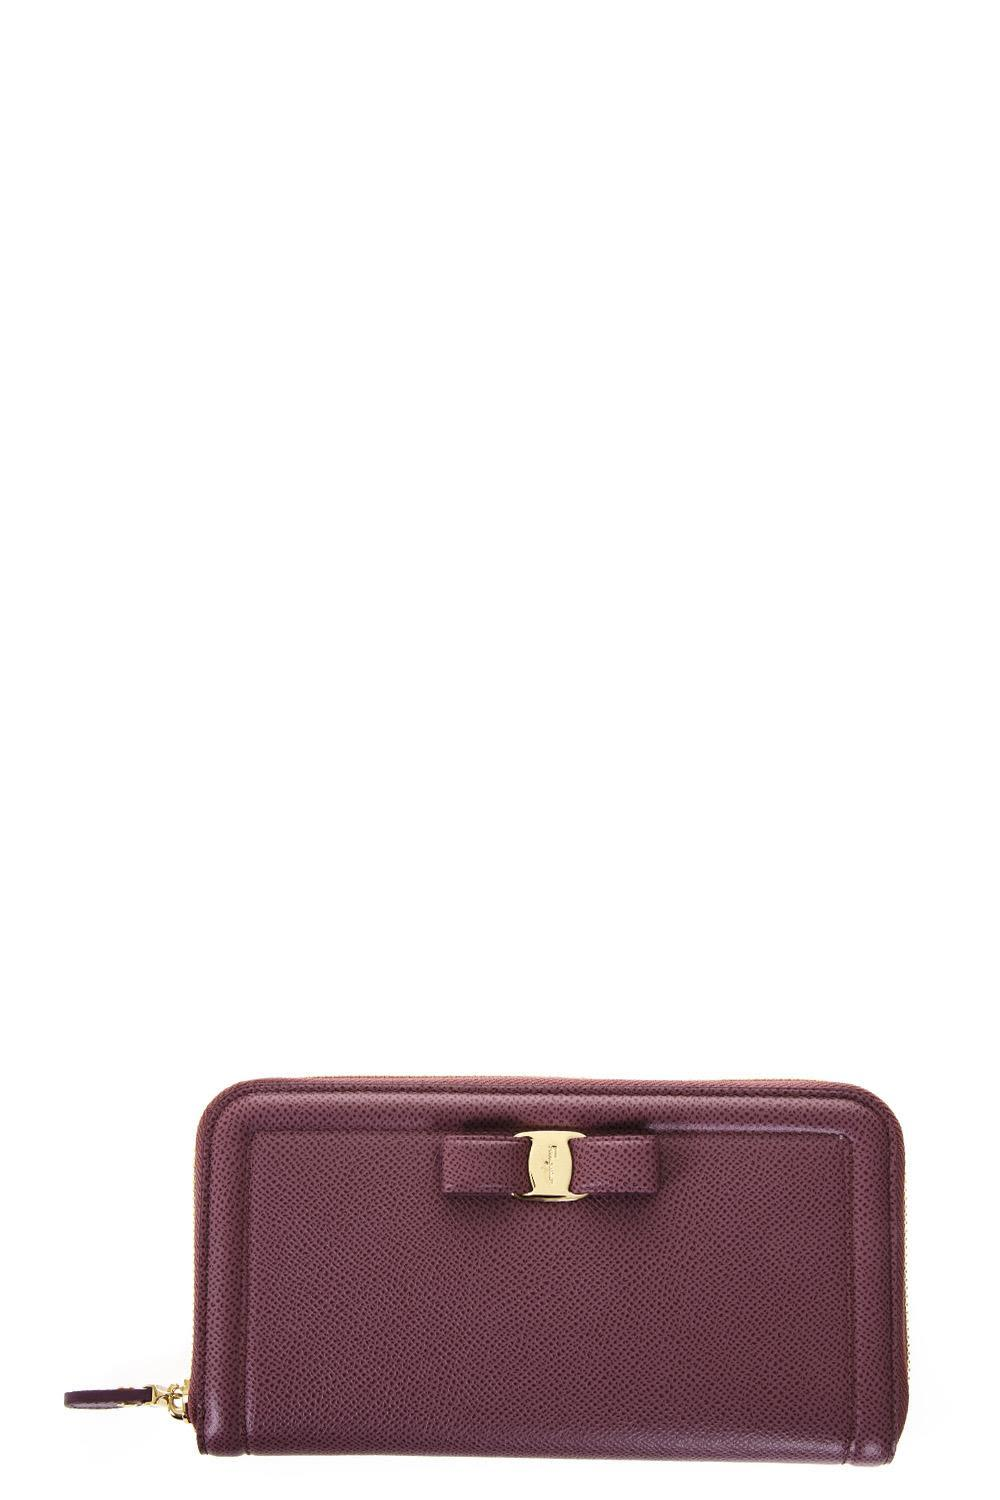 Salvatore Ferragamo Pebbled Leather Wallet In Mauve